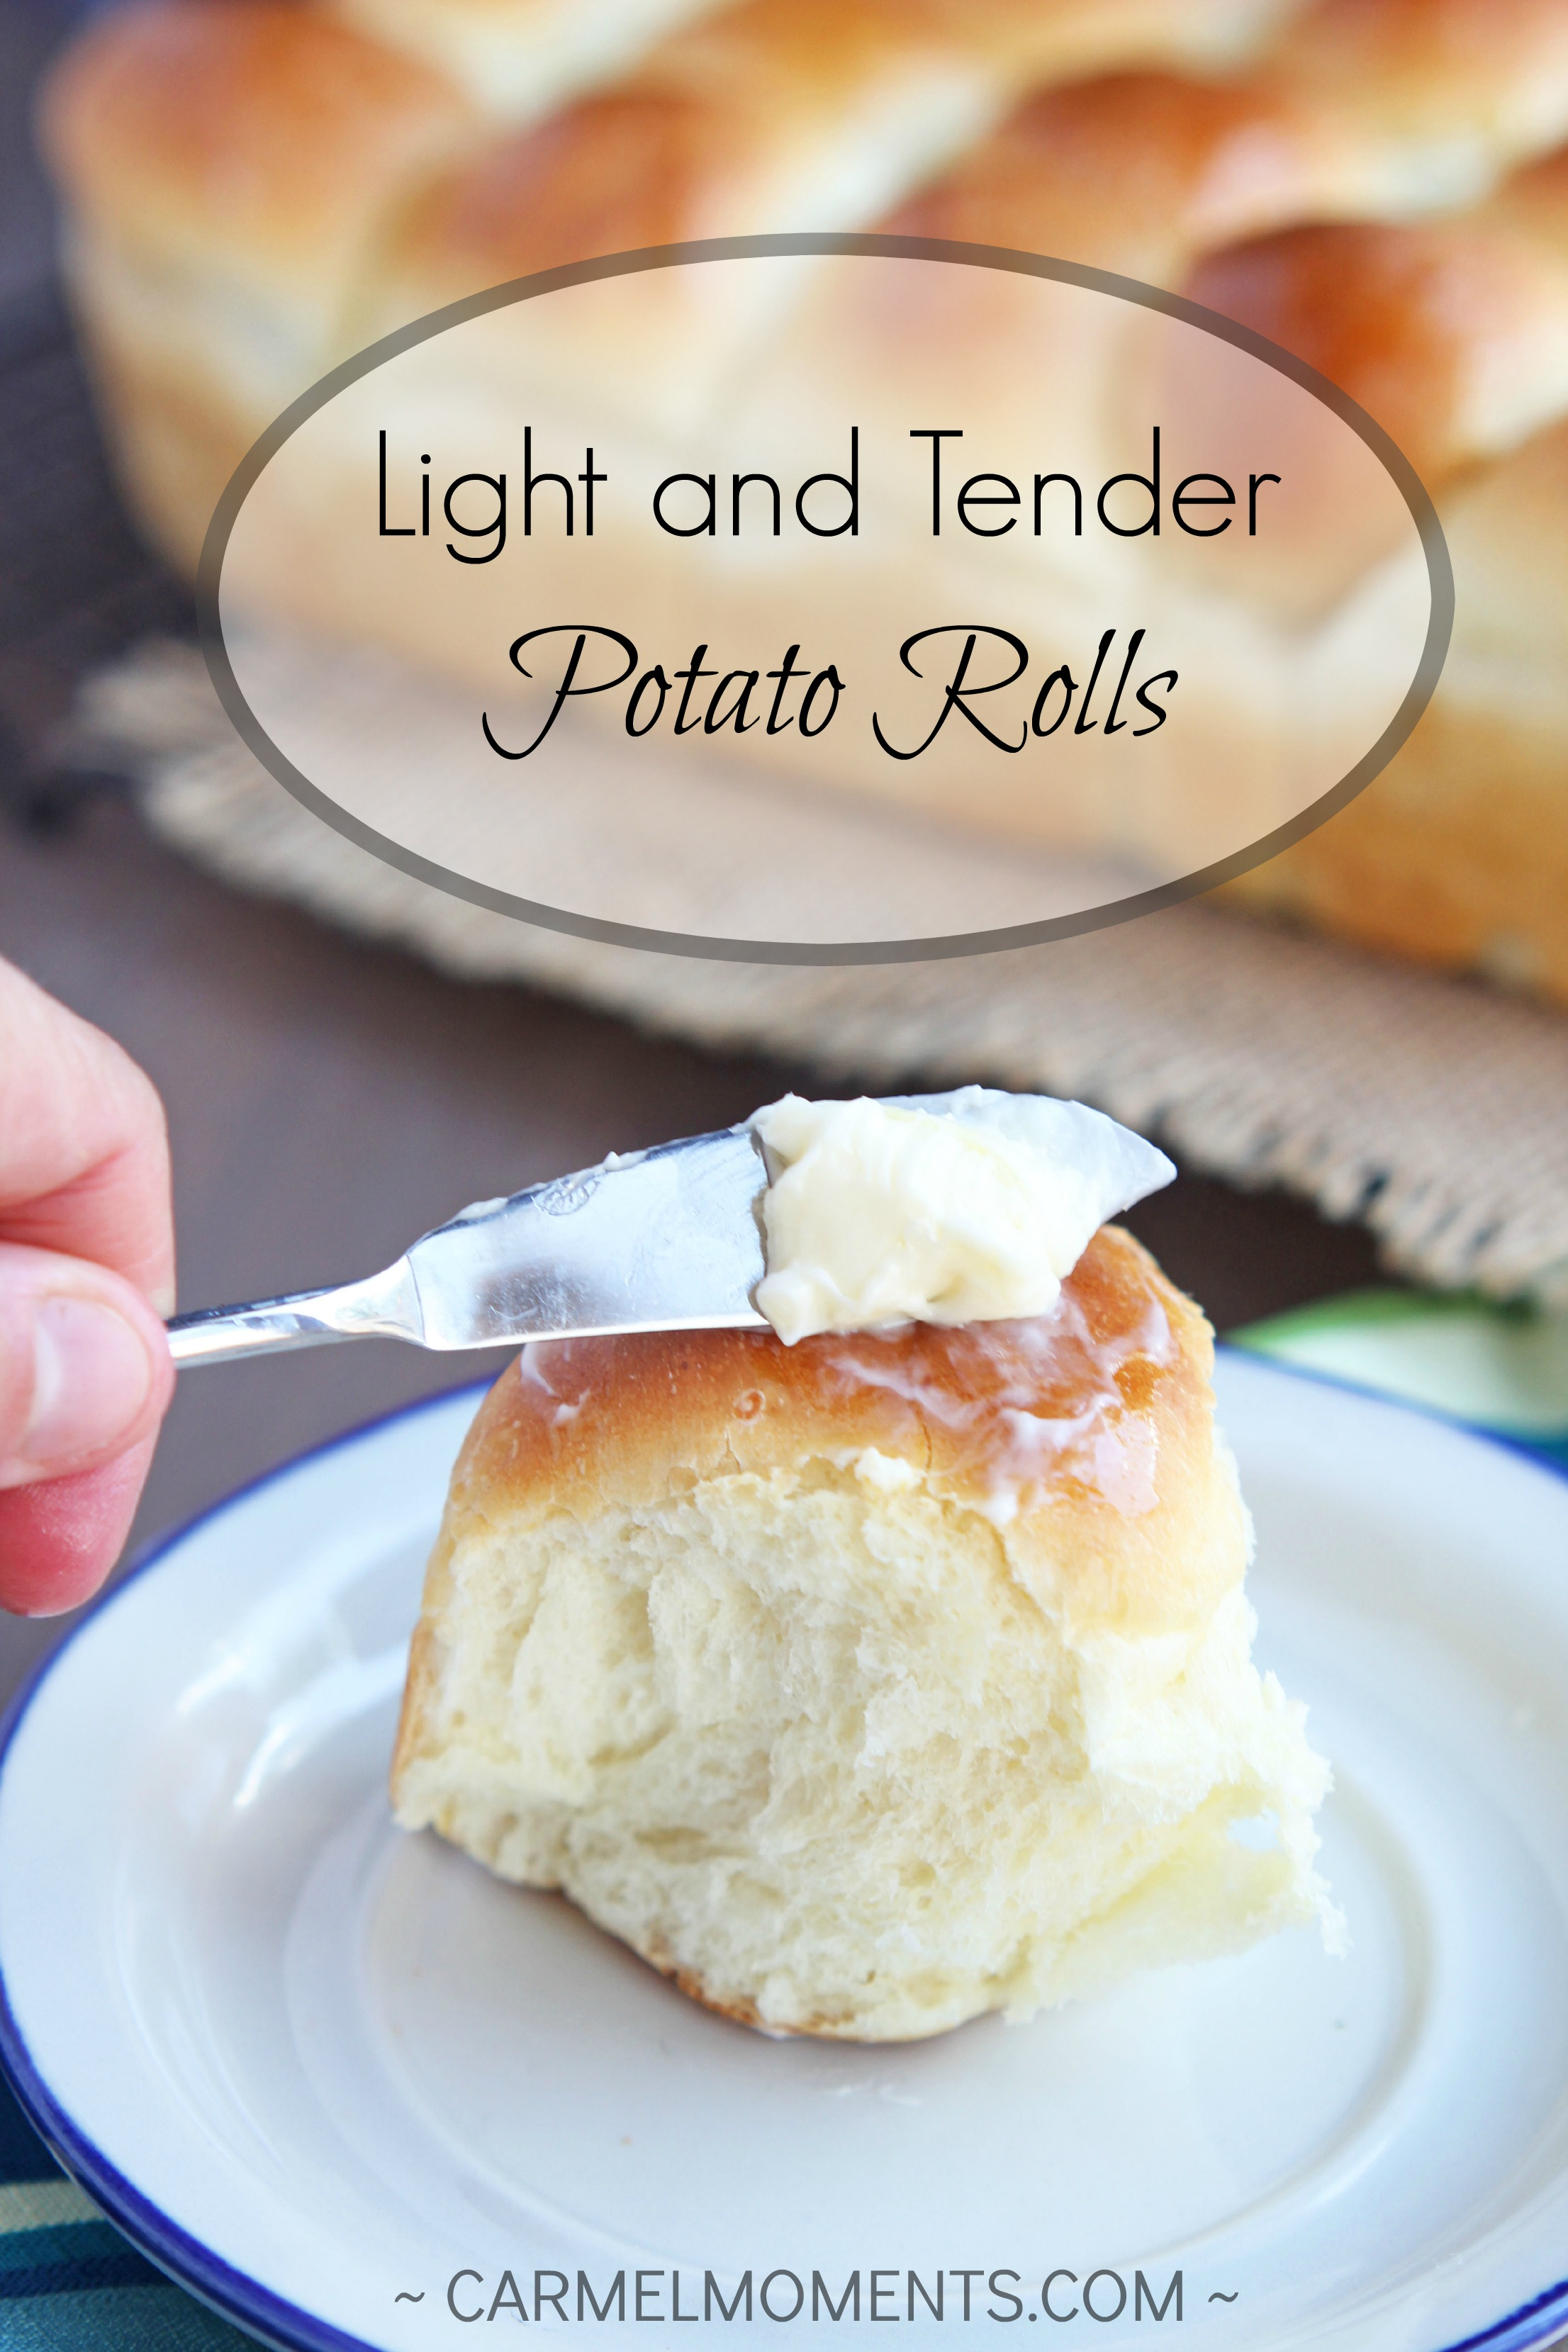 ... to recipe at hand. It's these light and tender potato dinner rolls